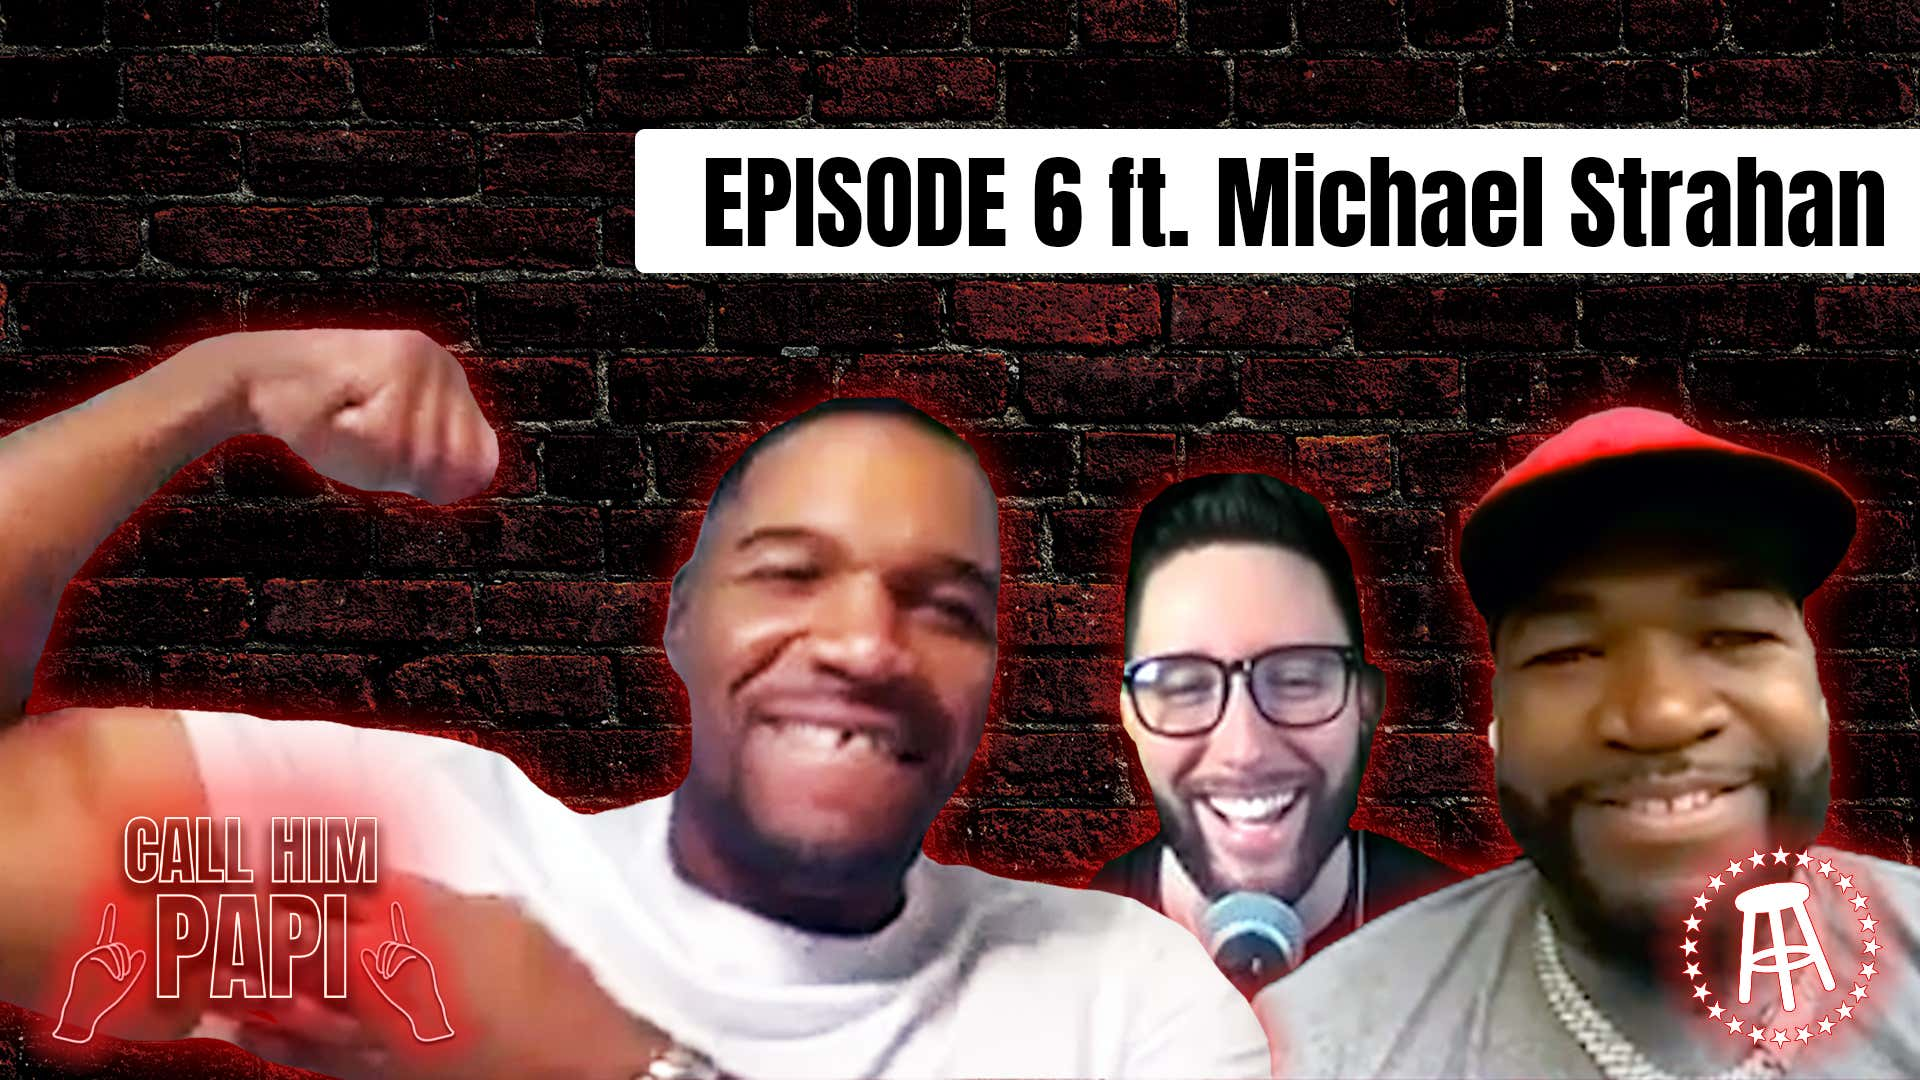 Call Him Papi - Episode 6: Important Life Lessons with Papi and Michael Strahan